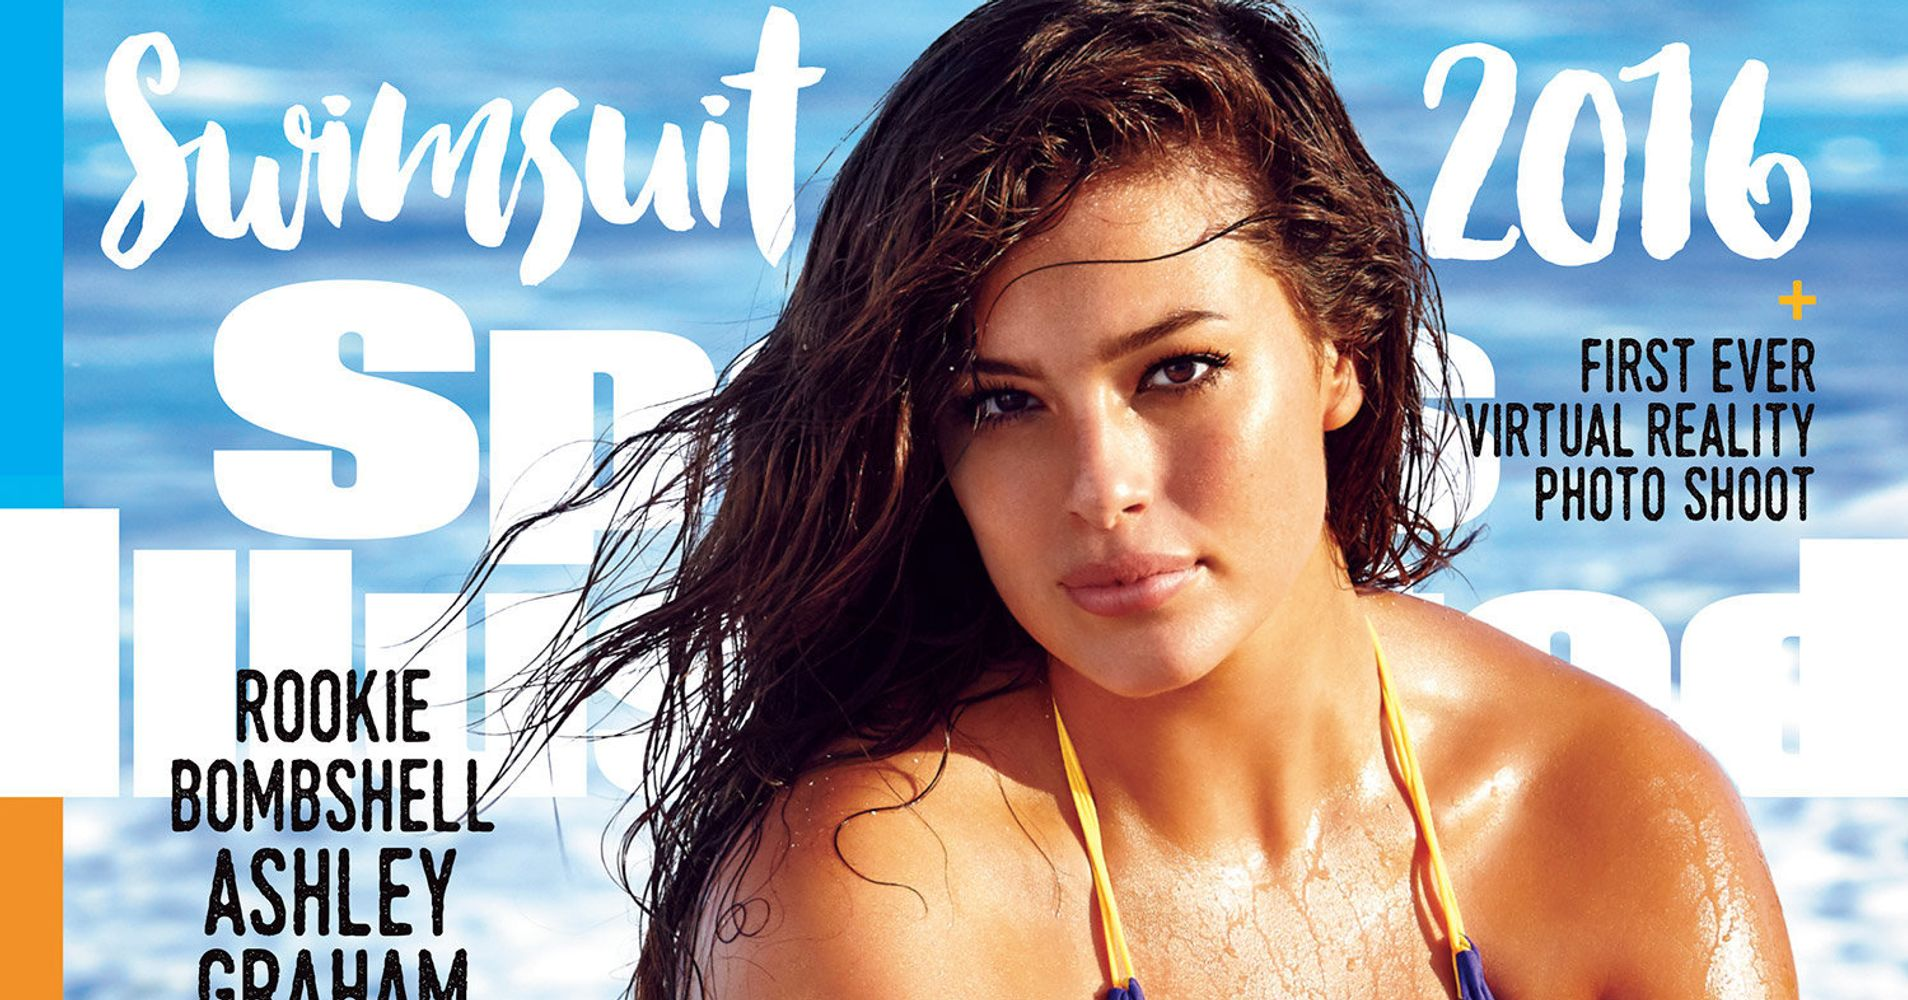 385215a338f Sports Illustrated Just Made History By Putting A Plus-Size Model On Its  Cover